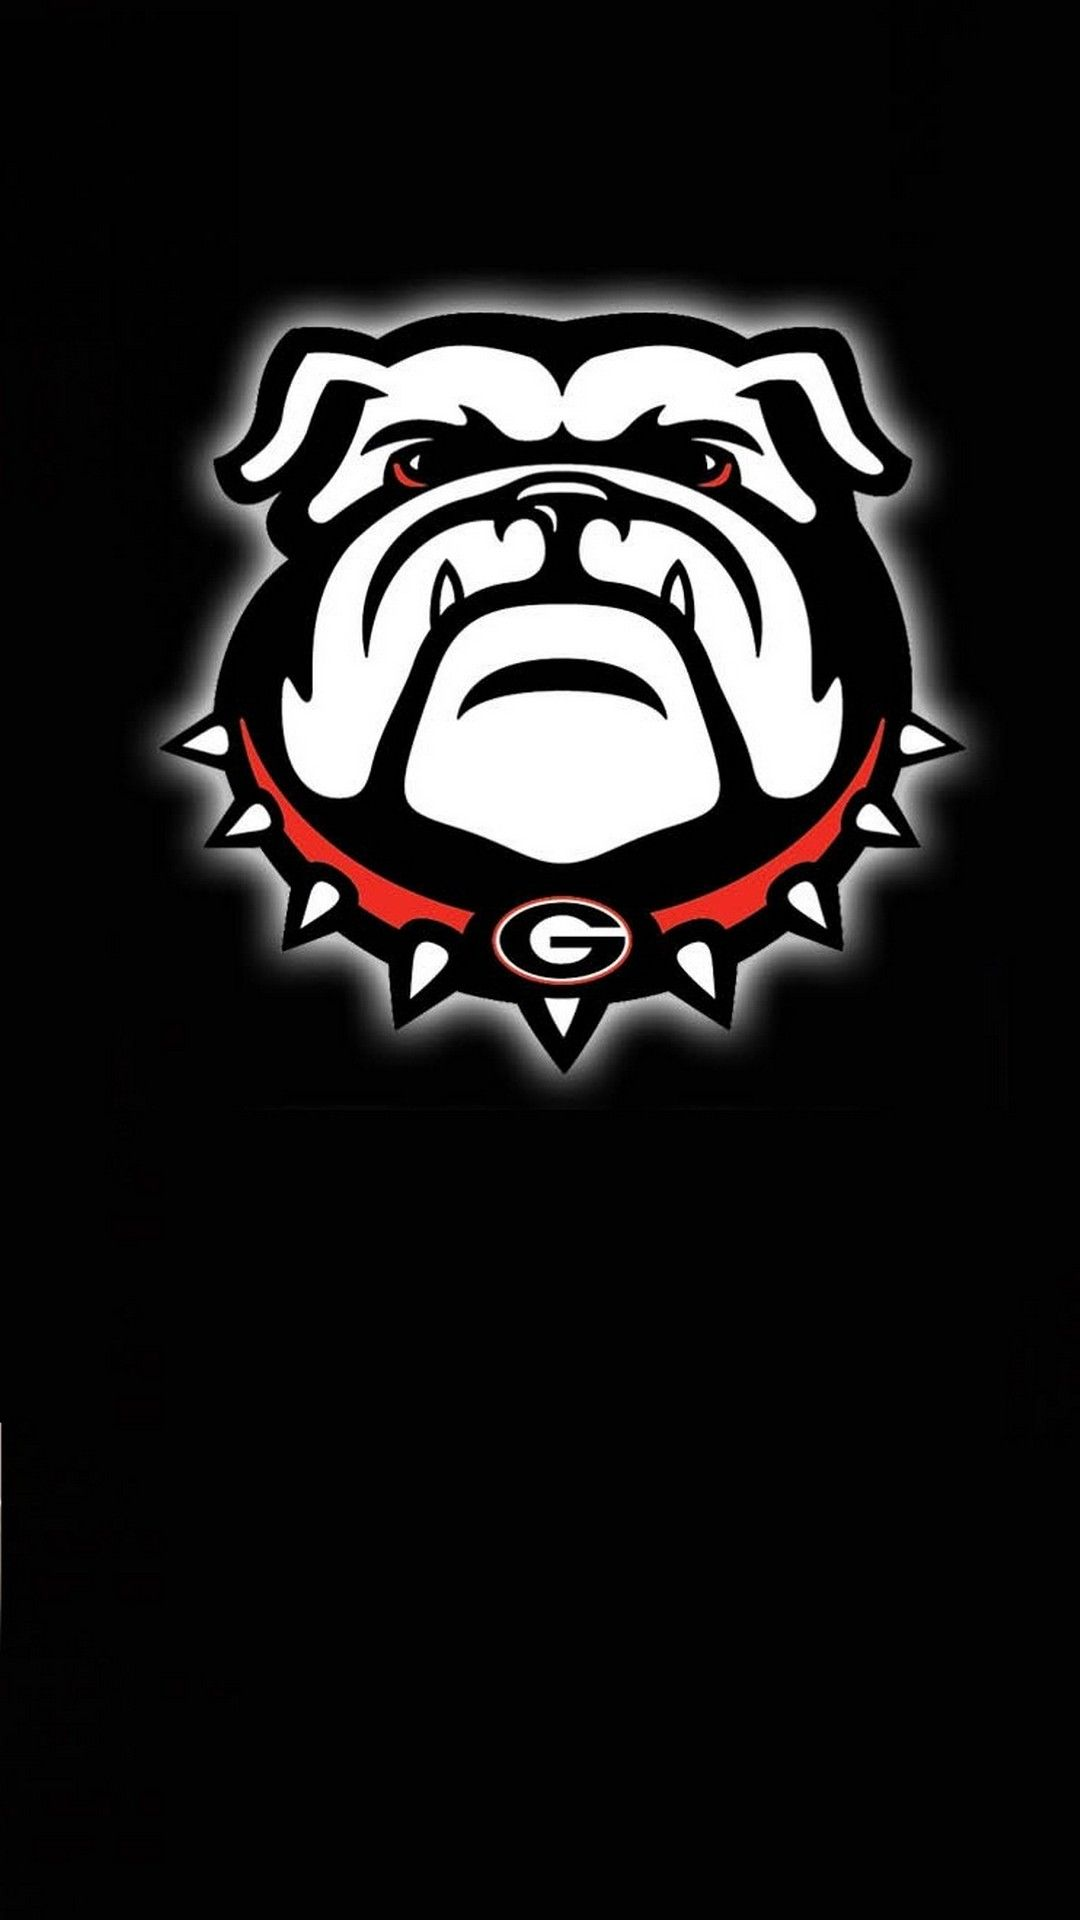 Wallpaper Georgia Bulldogs iPhone - Best iPhone Wallpaper